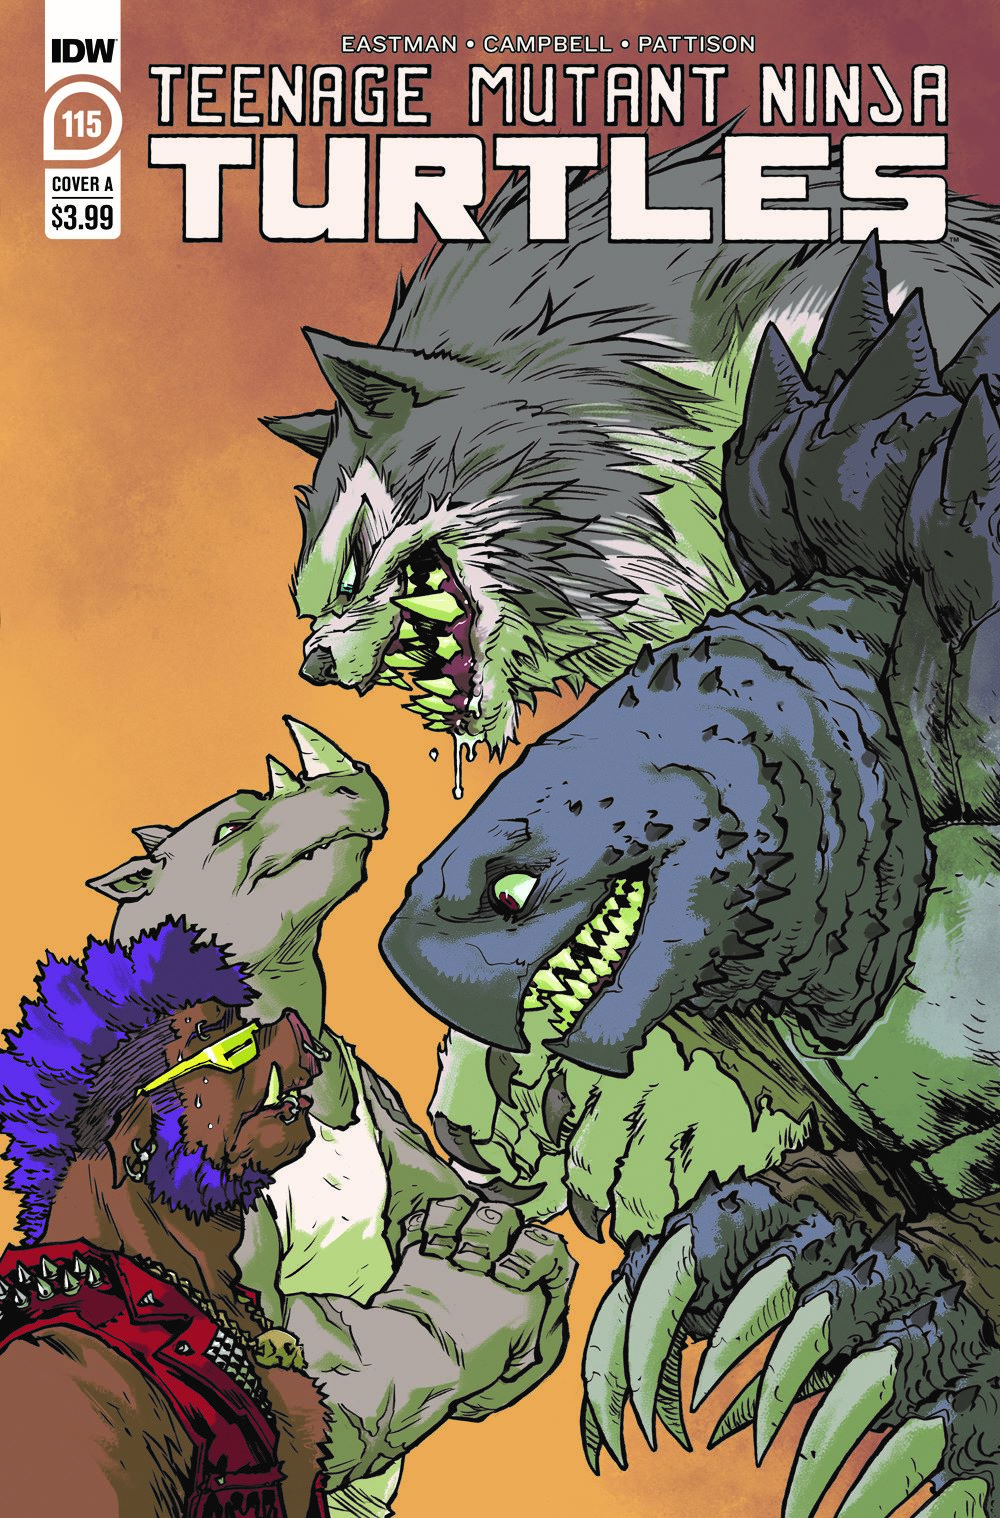 TMNT115_cvrA ComicList: IDW Publishing New Releases for 03/17/2021